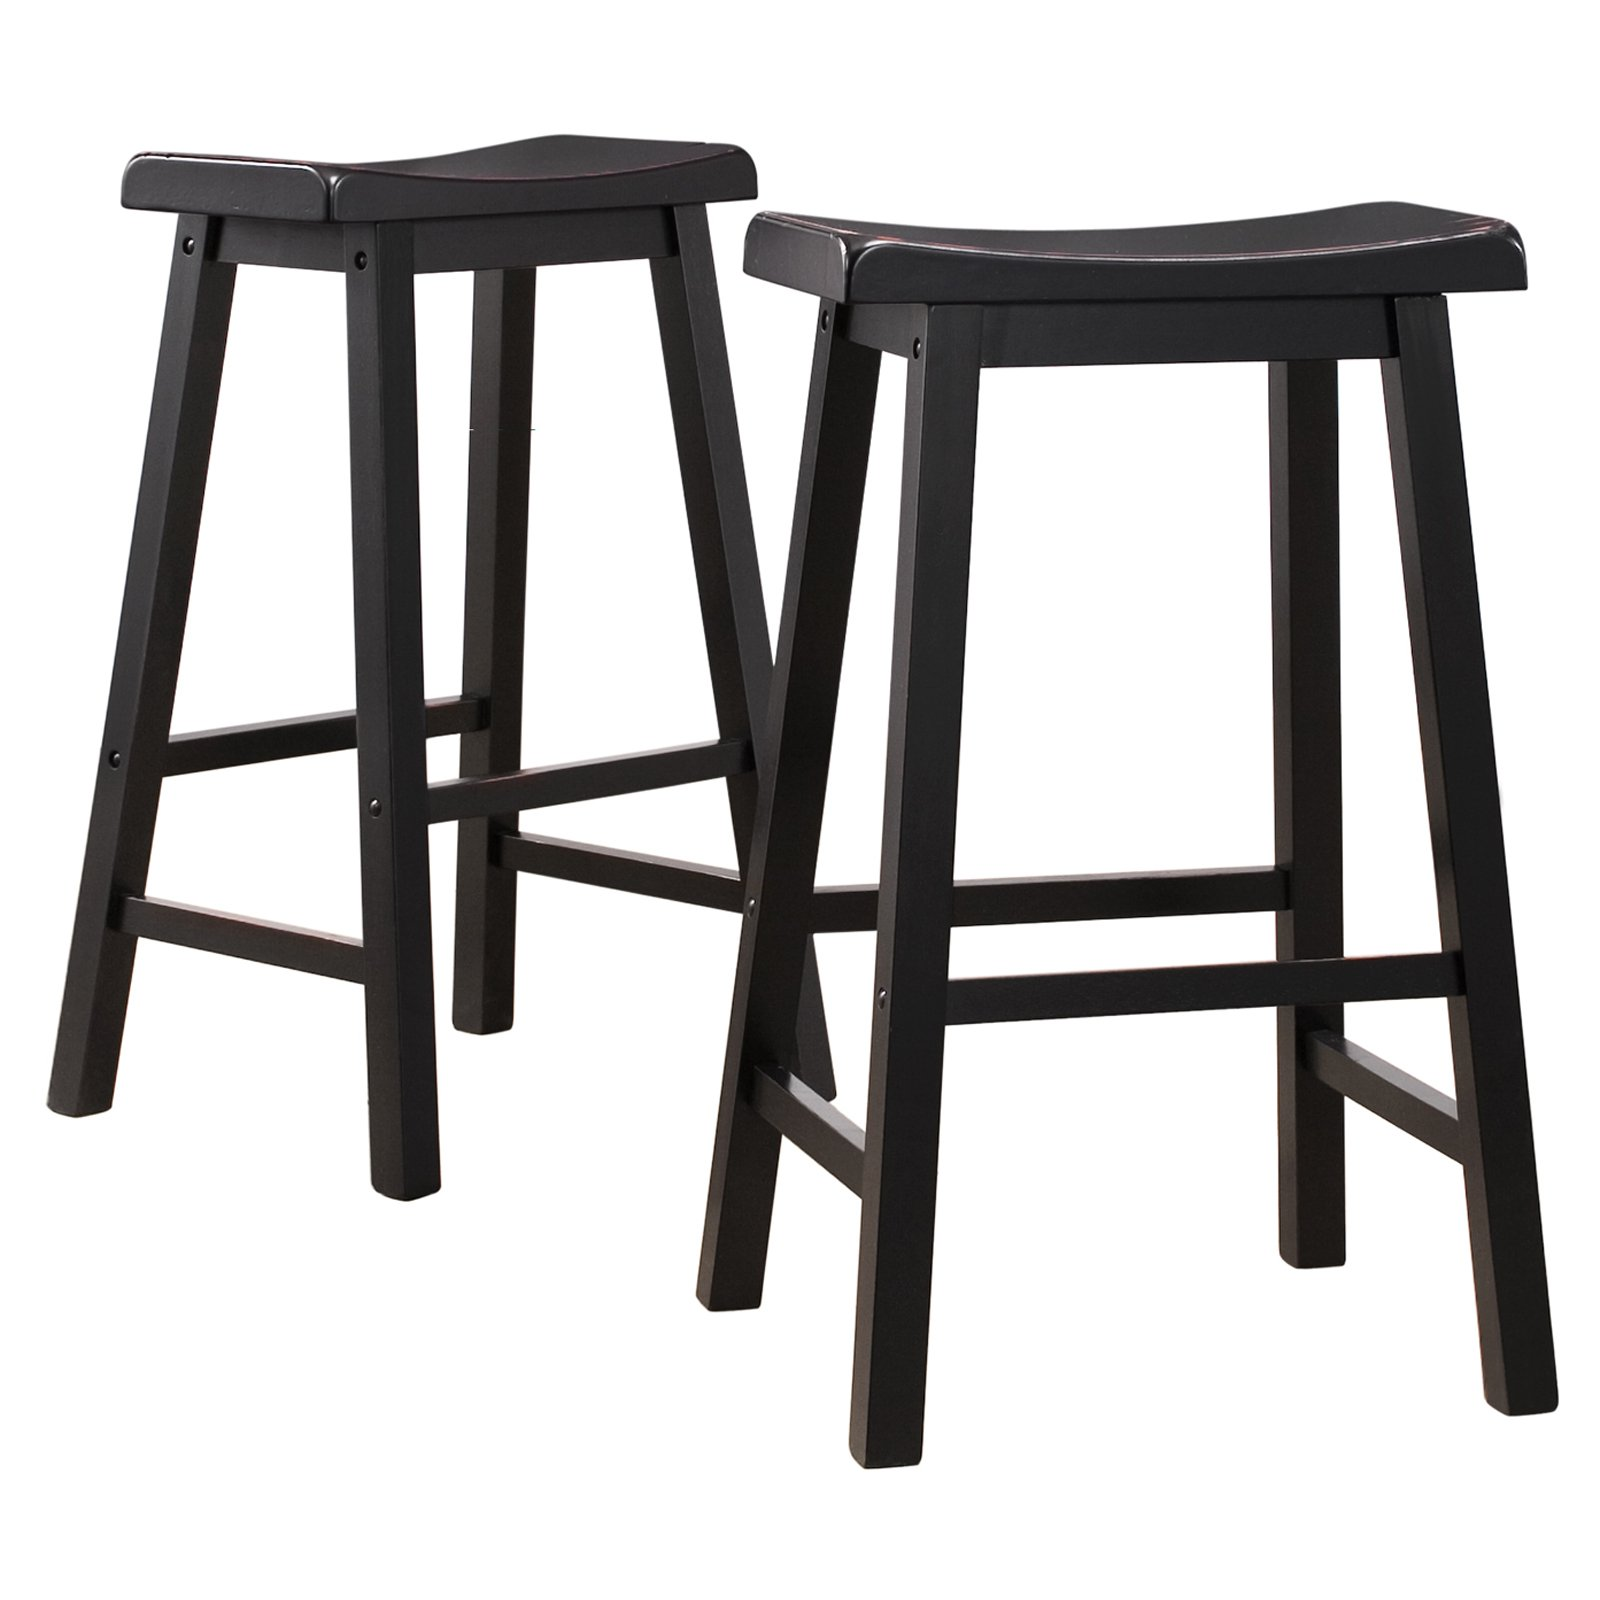 Prime Ashby Bar Stools 29 Set Of 2 Black Rubbed Walmart Com Gamerscity Chair Design For Home Gamerscityorg